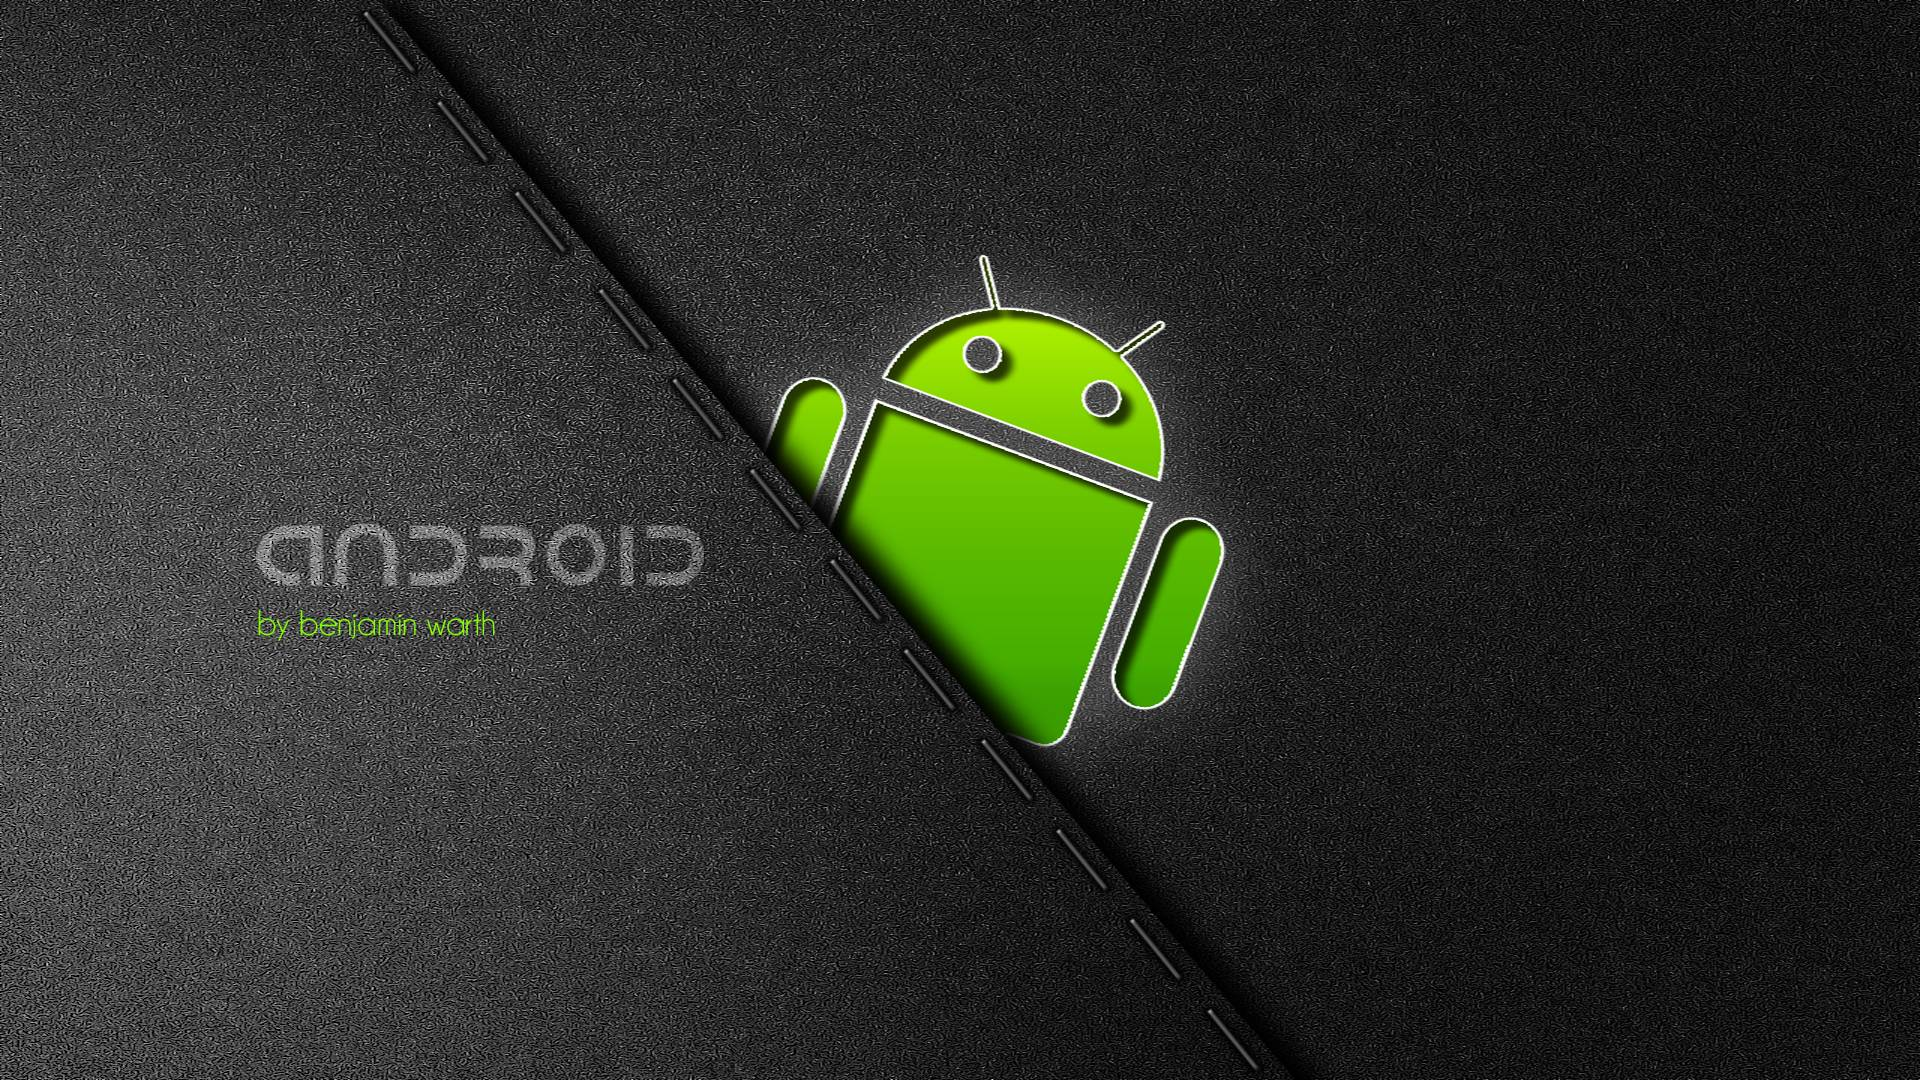 android 05 hd wallpaper for desktop free wallpapers for androids download